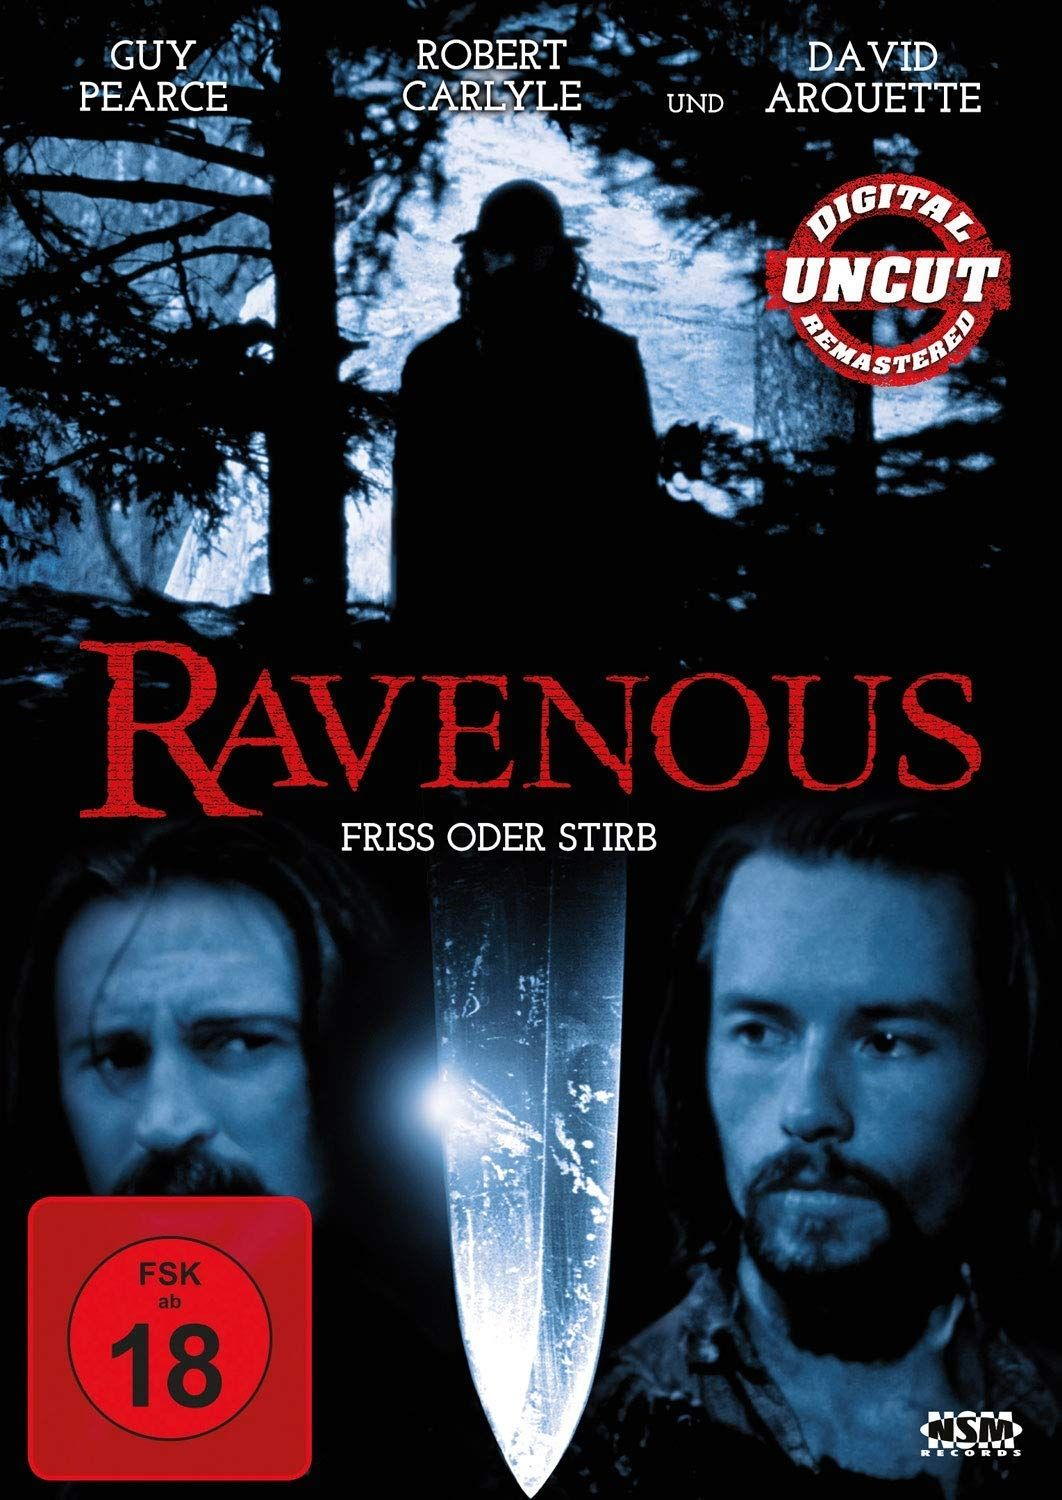 Ravenous - Friss oder stirb (Uncut)